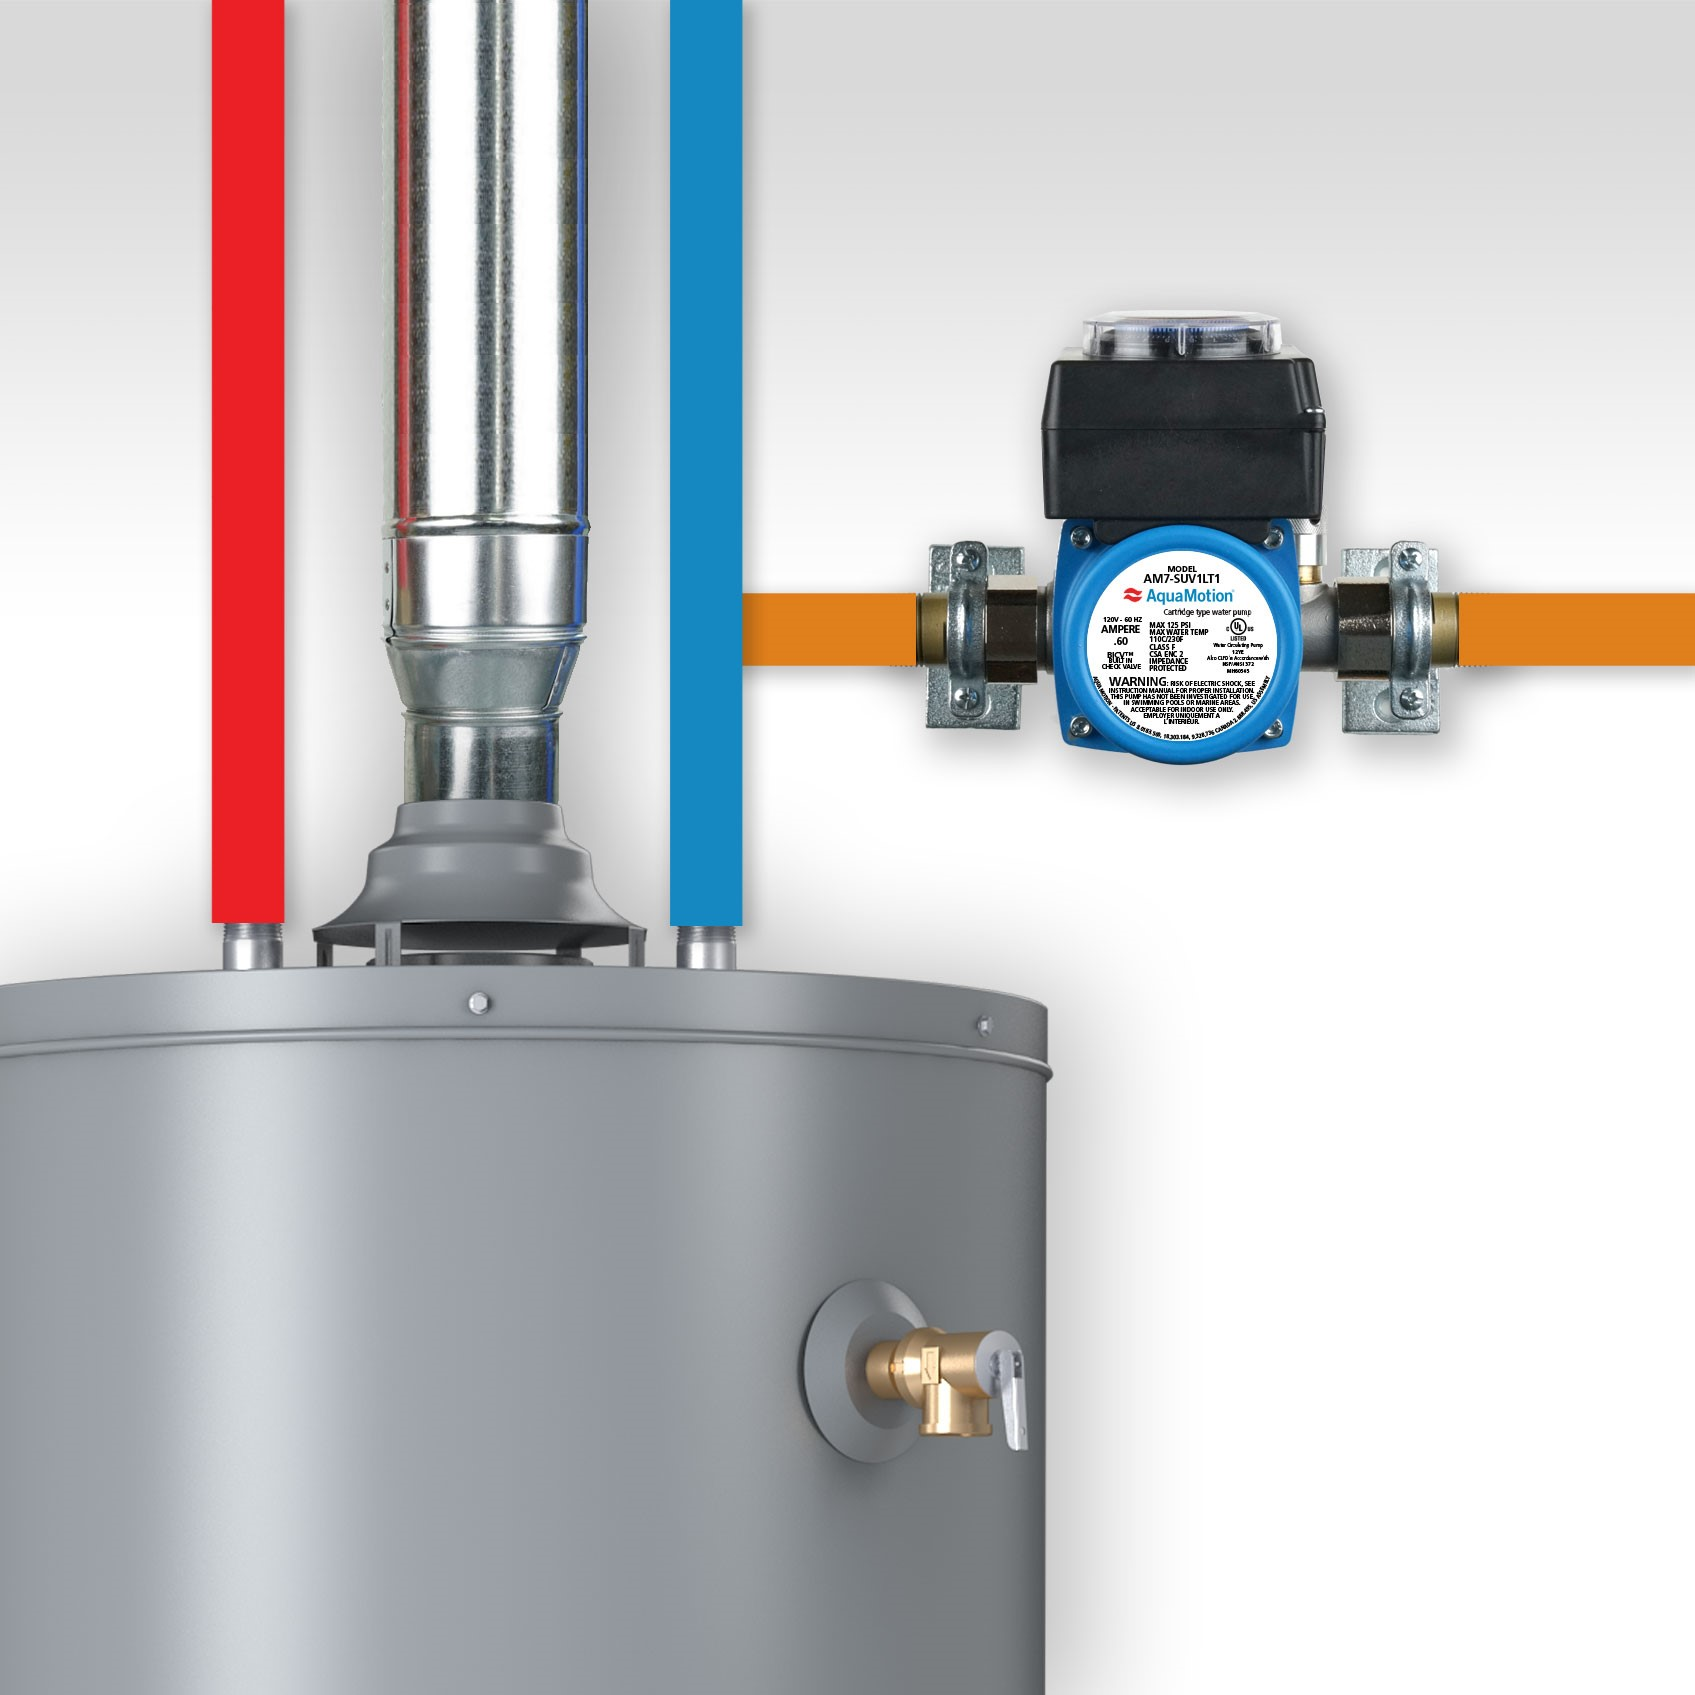 AquaMotion AMH2K-7 Recirculation Pump Kit with Timer for 3 Pipe Hot Water Tank Installation